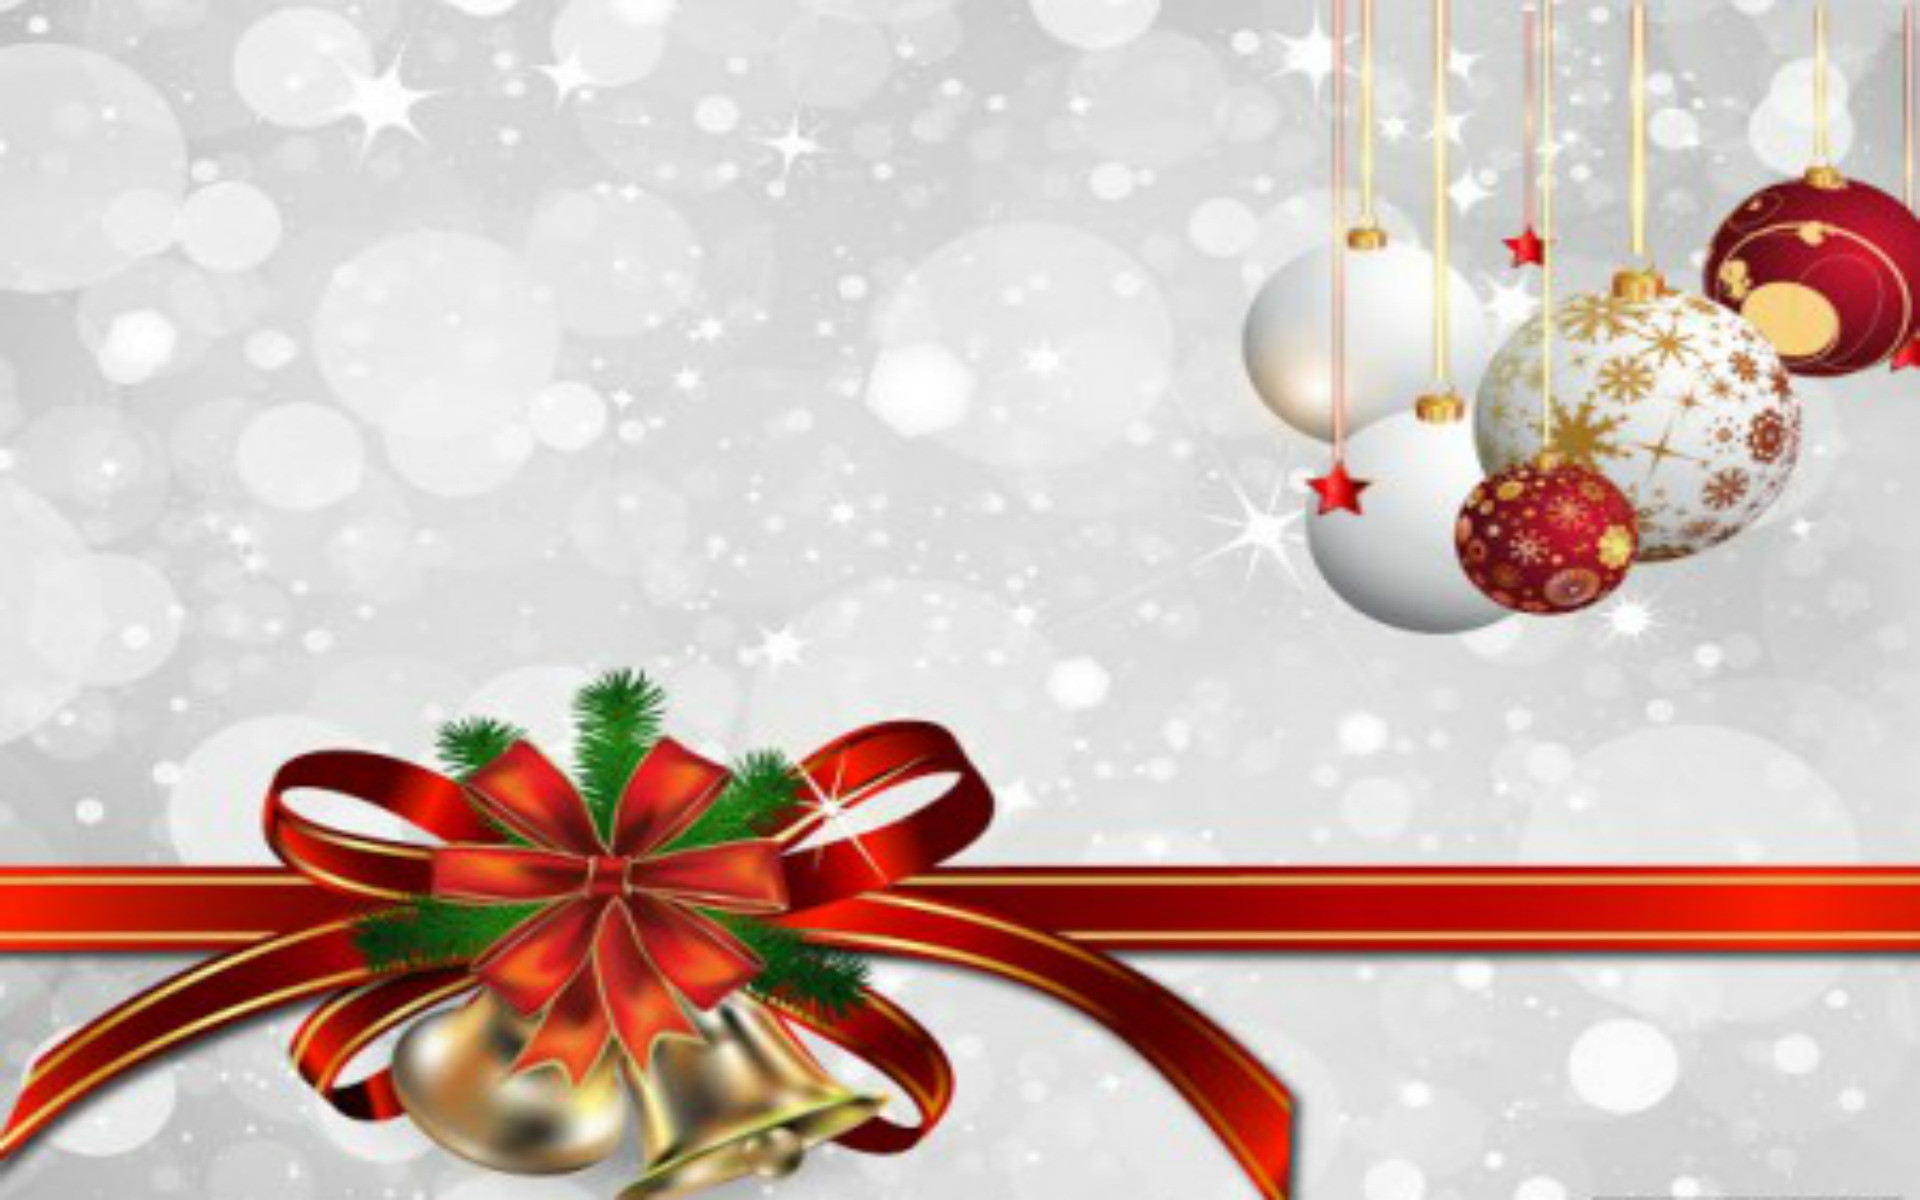 Christmas computer background 56 images - Free christmas images for desktop wallpaper ...